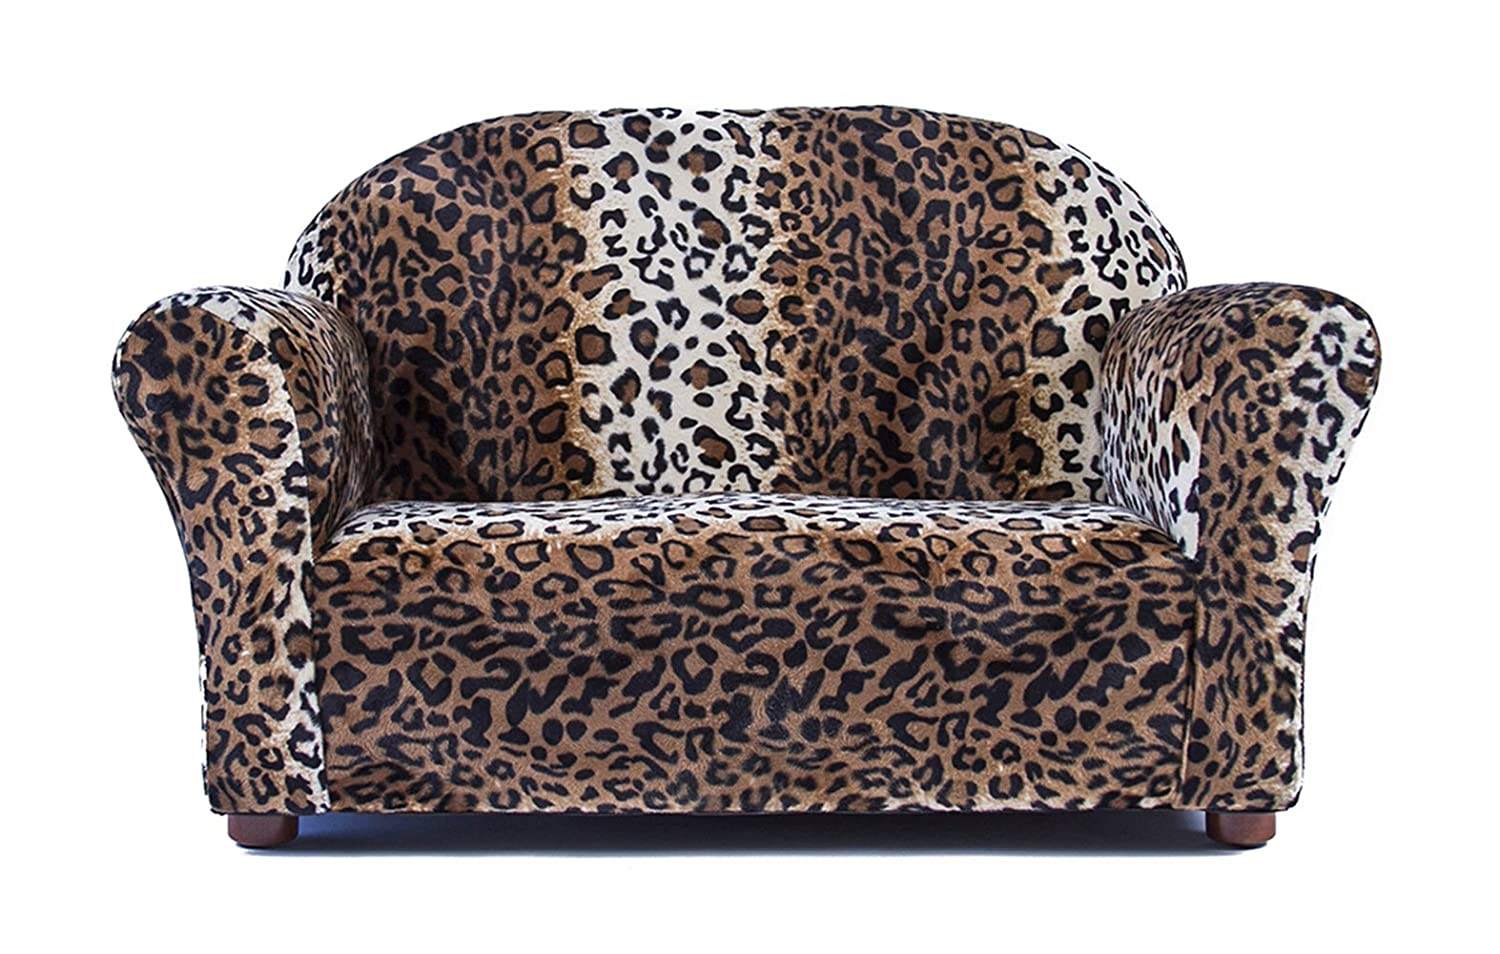 Keet Roundy Faux Fur Children's Sofa, Leopard SR22